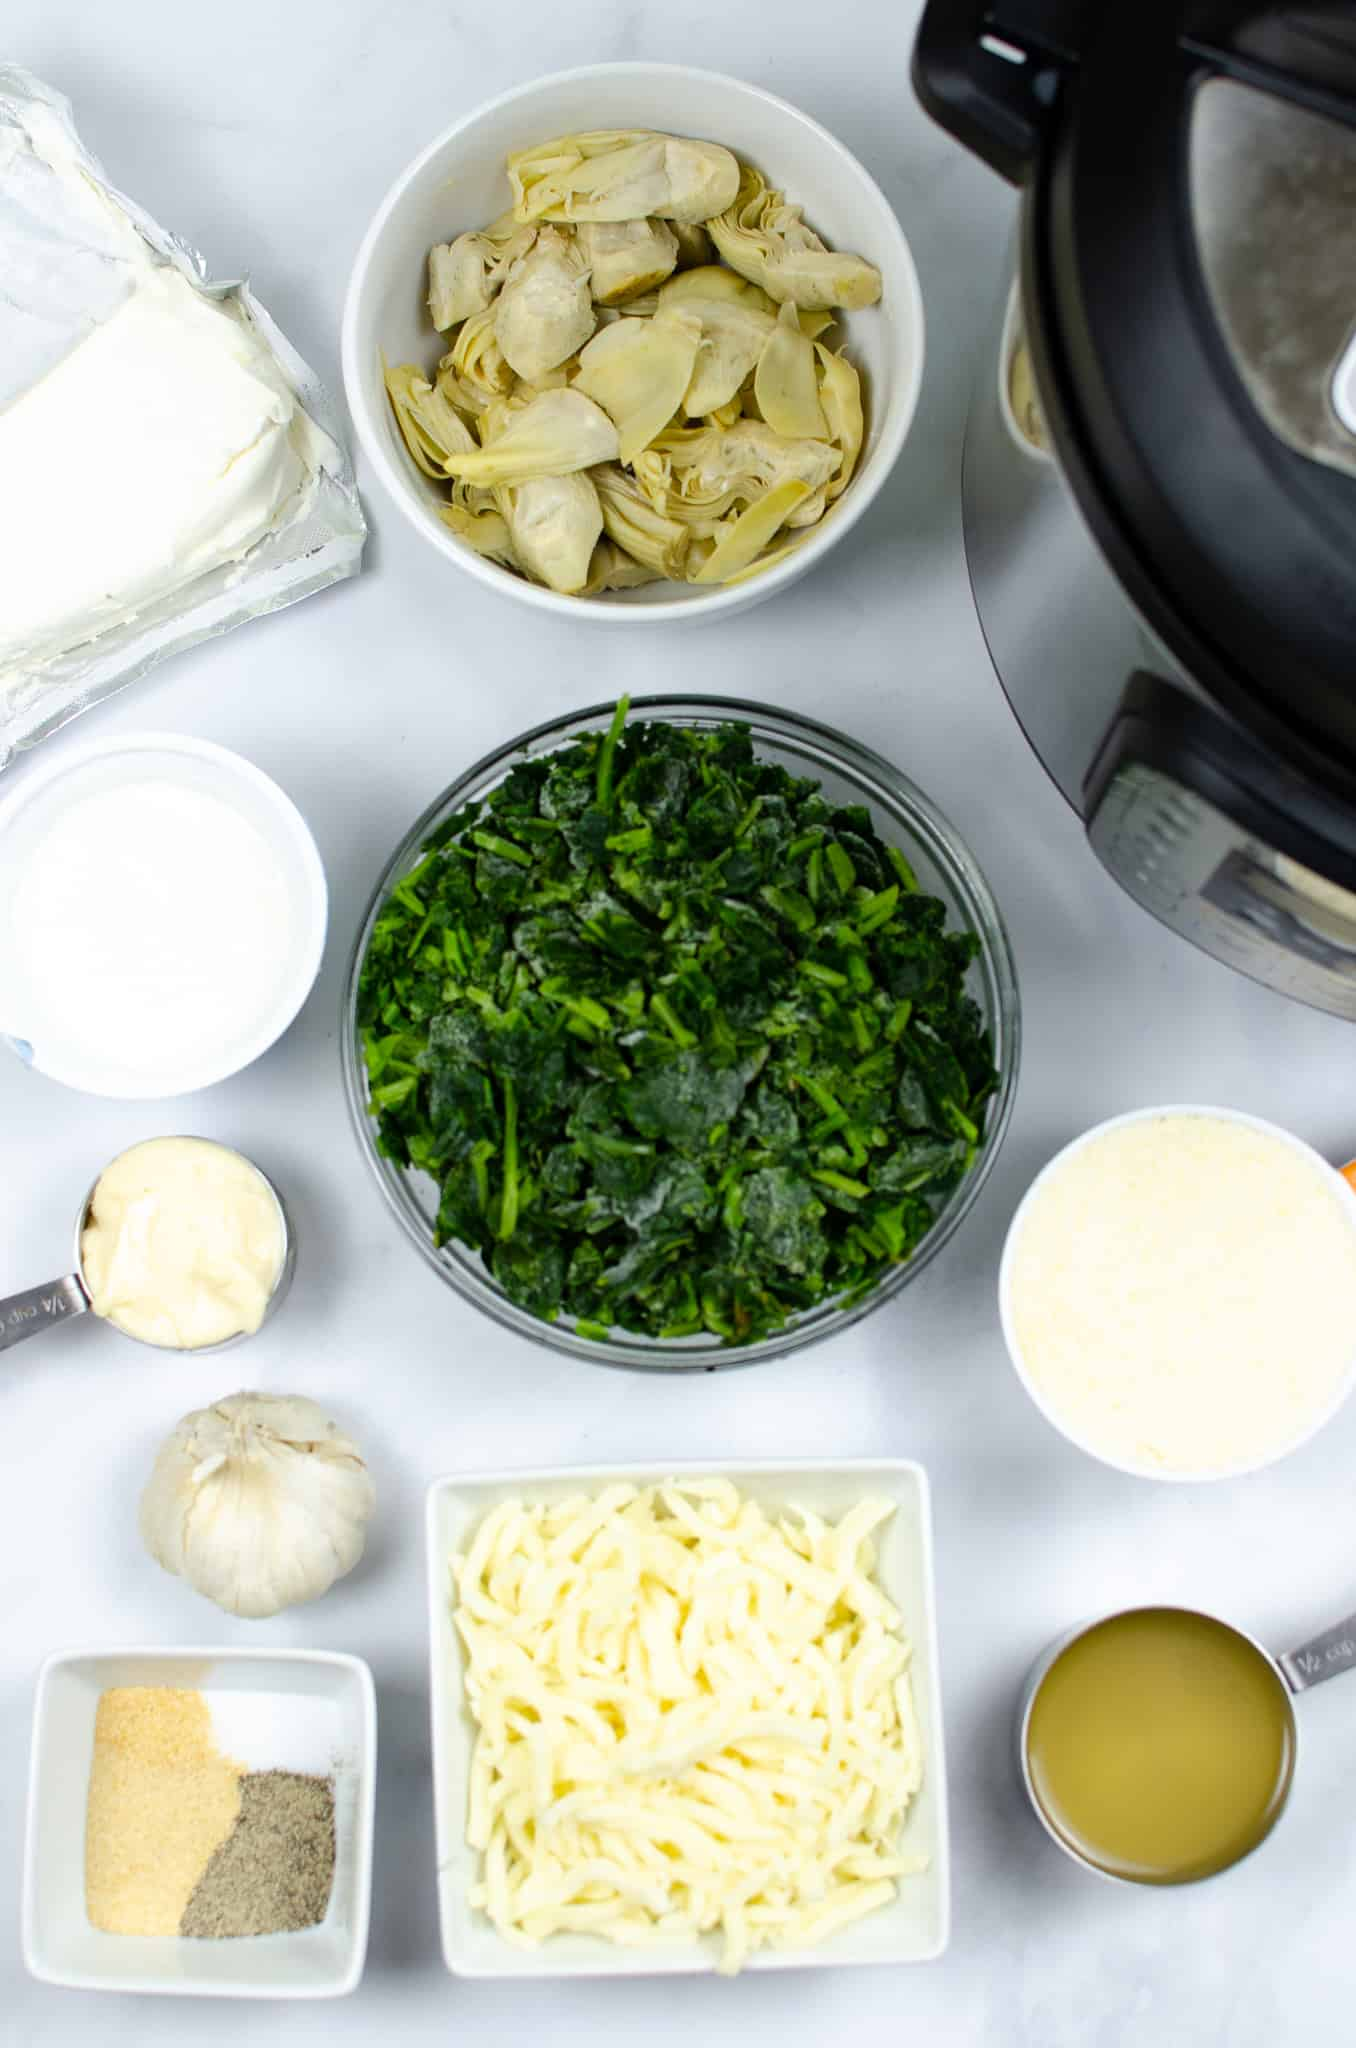 Bowl of spinach, artichoke, cheese and other ingredients for spinach artichoke dip